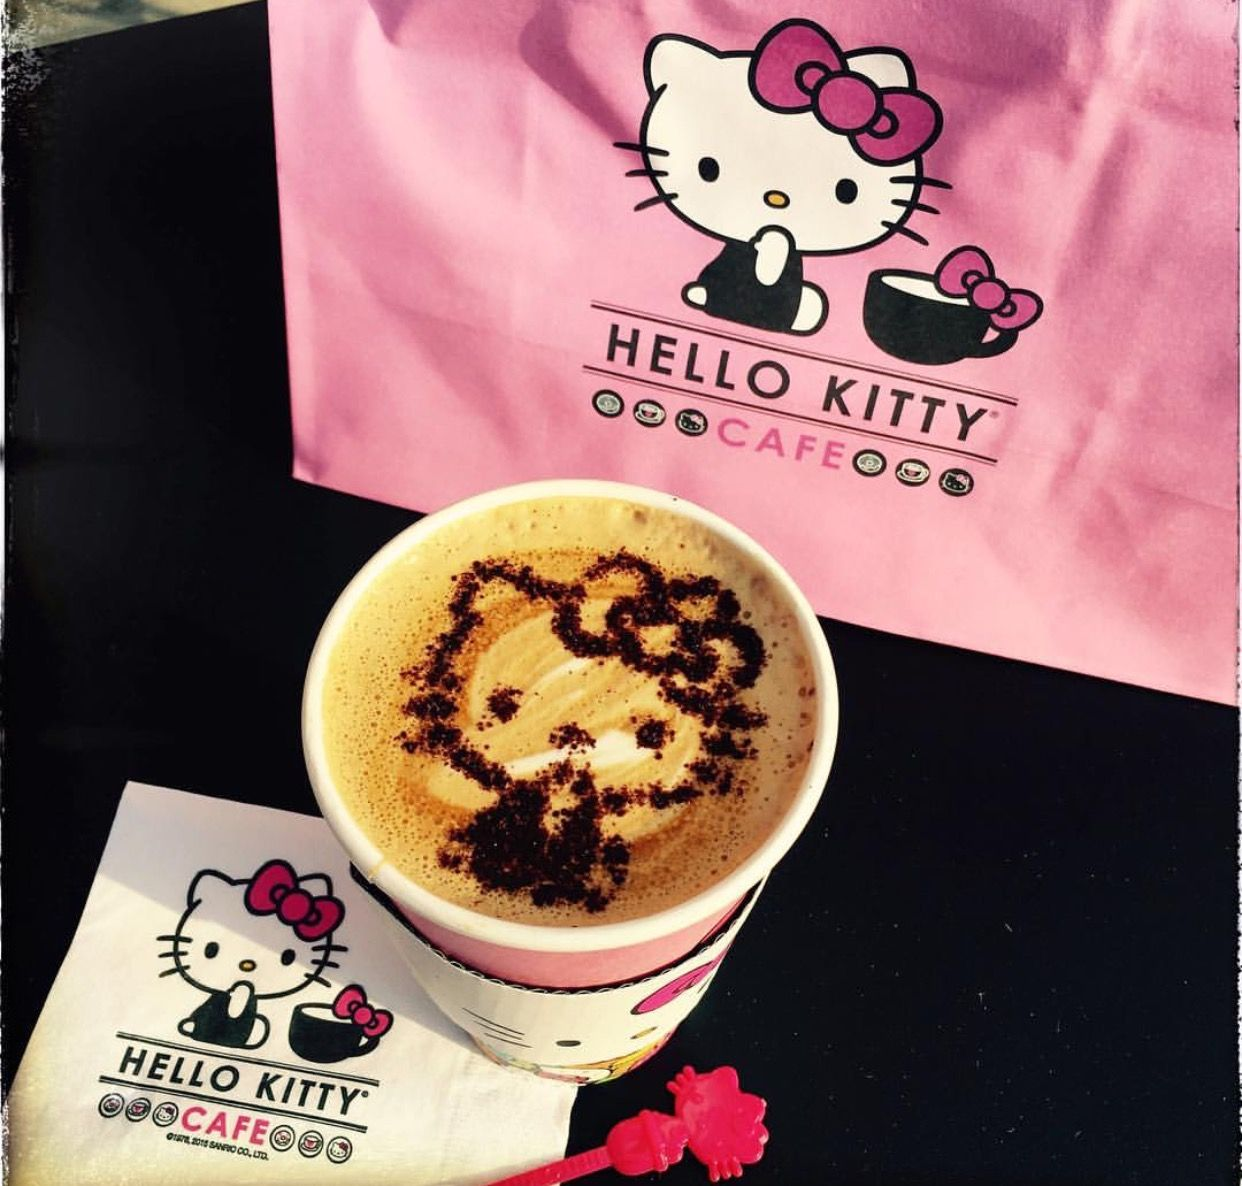 Pin by kat staxx on hello kitty junkie kitty cafe hello